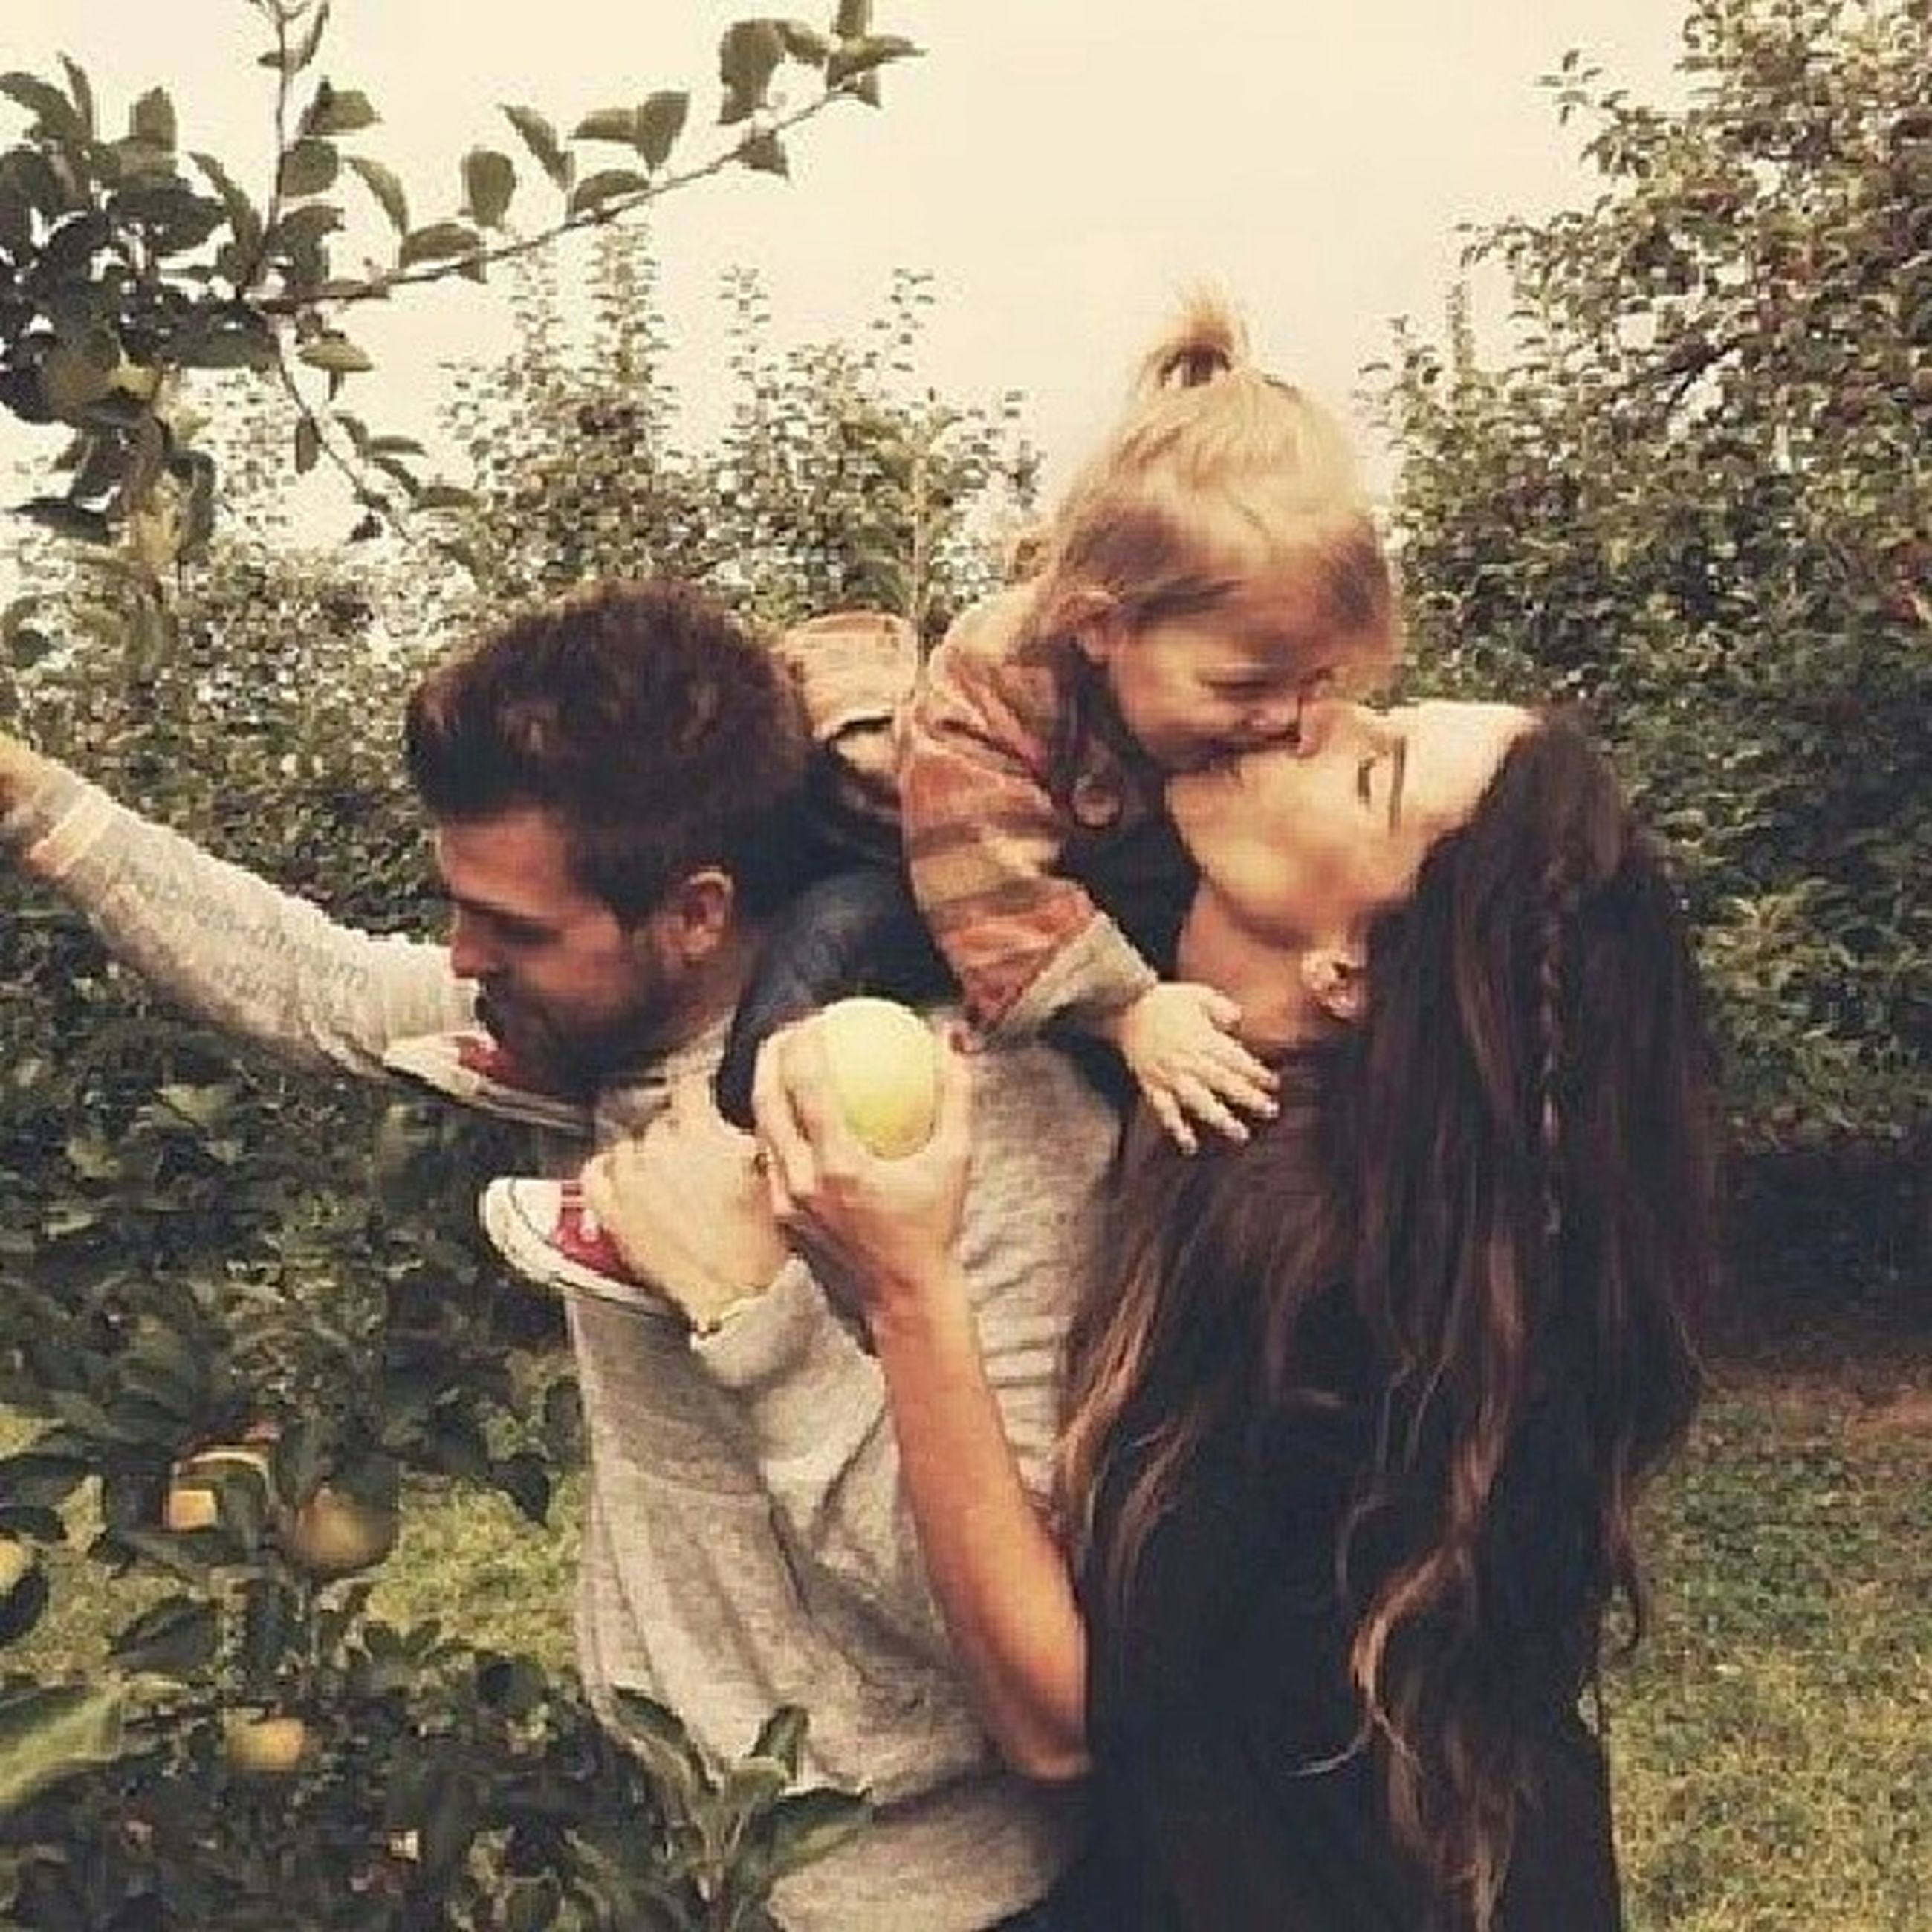 togetherness, bonding, love, childhood, lifestyles, person, elementary age, leisure activity, girls, family, boys, casual clothing, sister, innocence, sibling, family with one child, brother